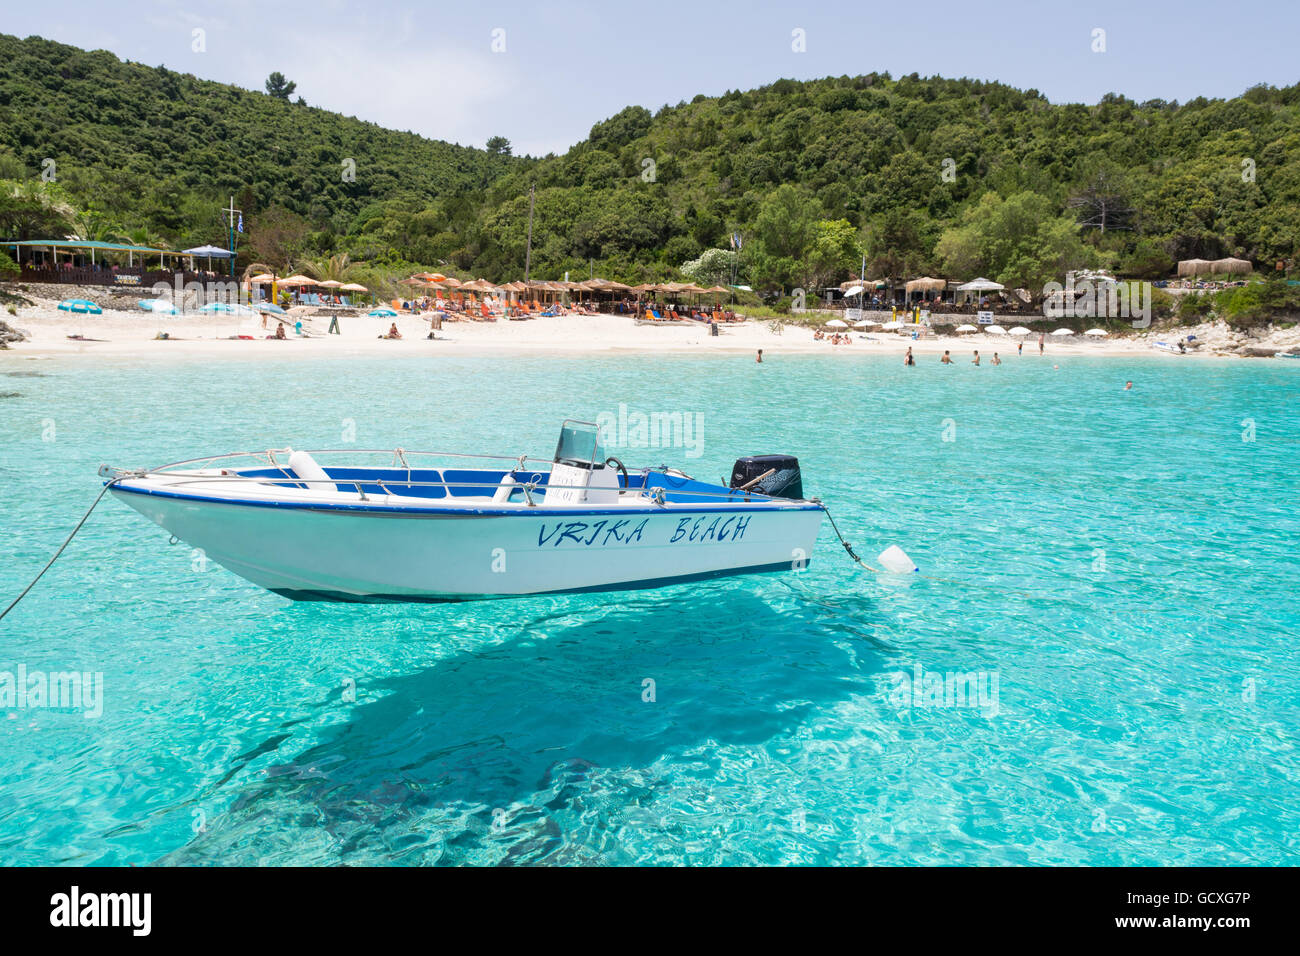 Vrika Beach, AntiPaxos, Greece - small boat moored in the clear turquoise waters of Vrika Bay looking towards beach - Stock Image